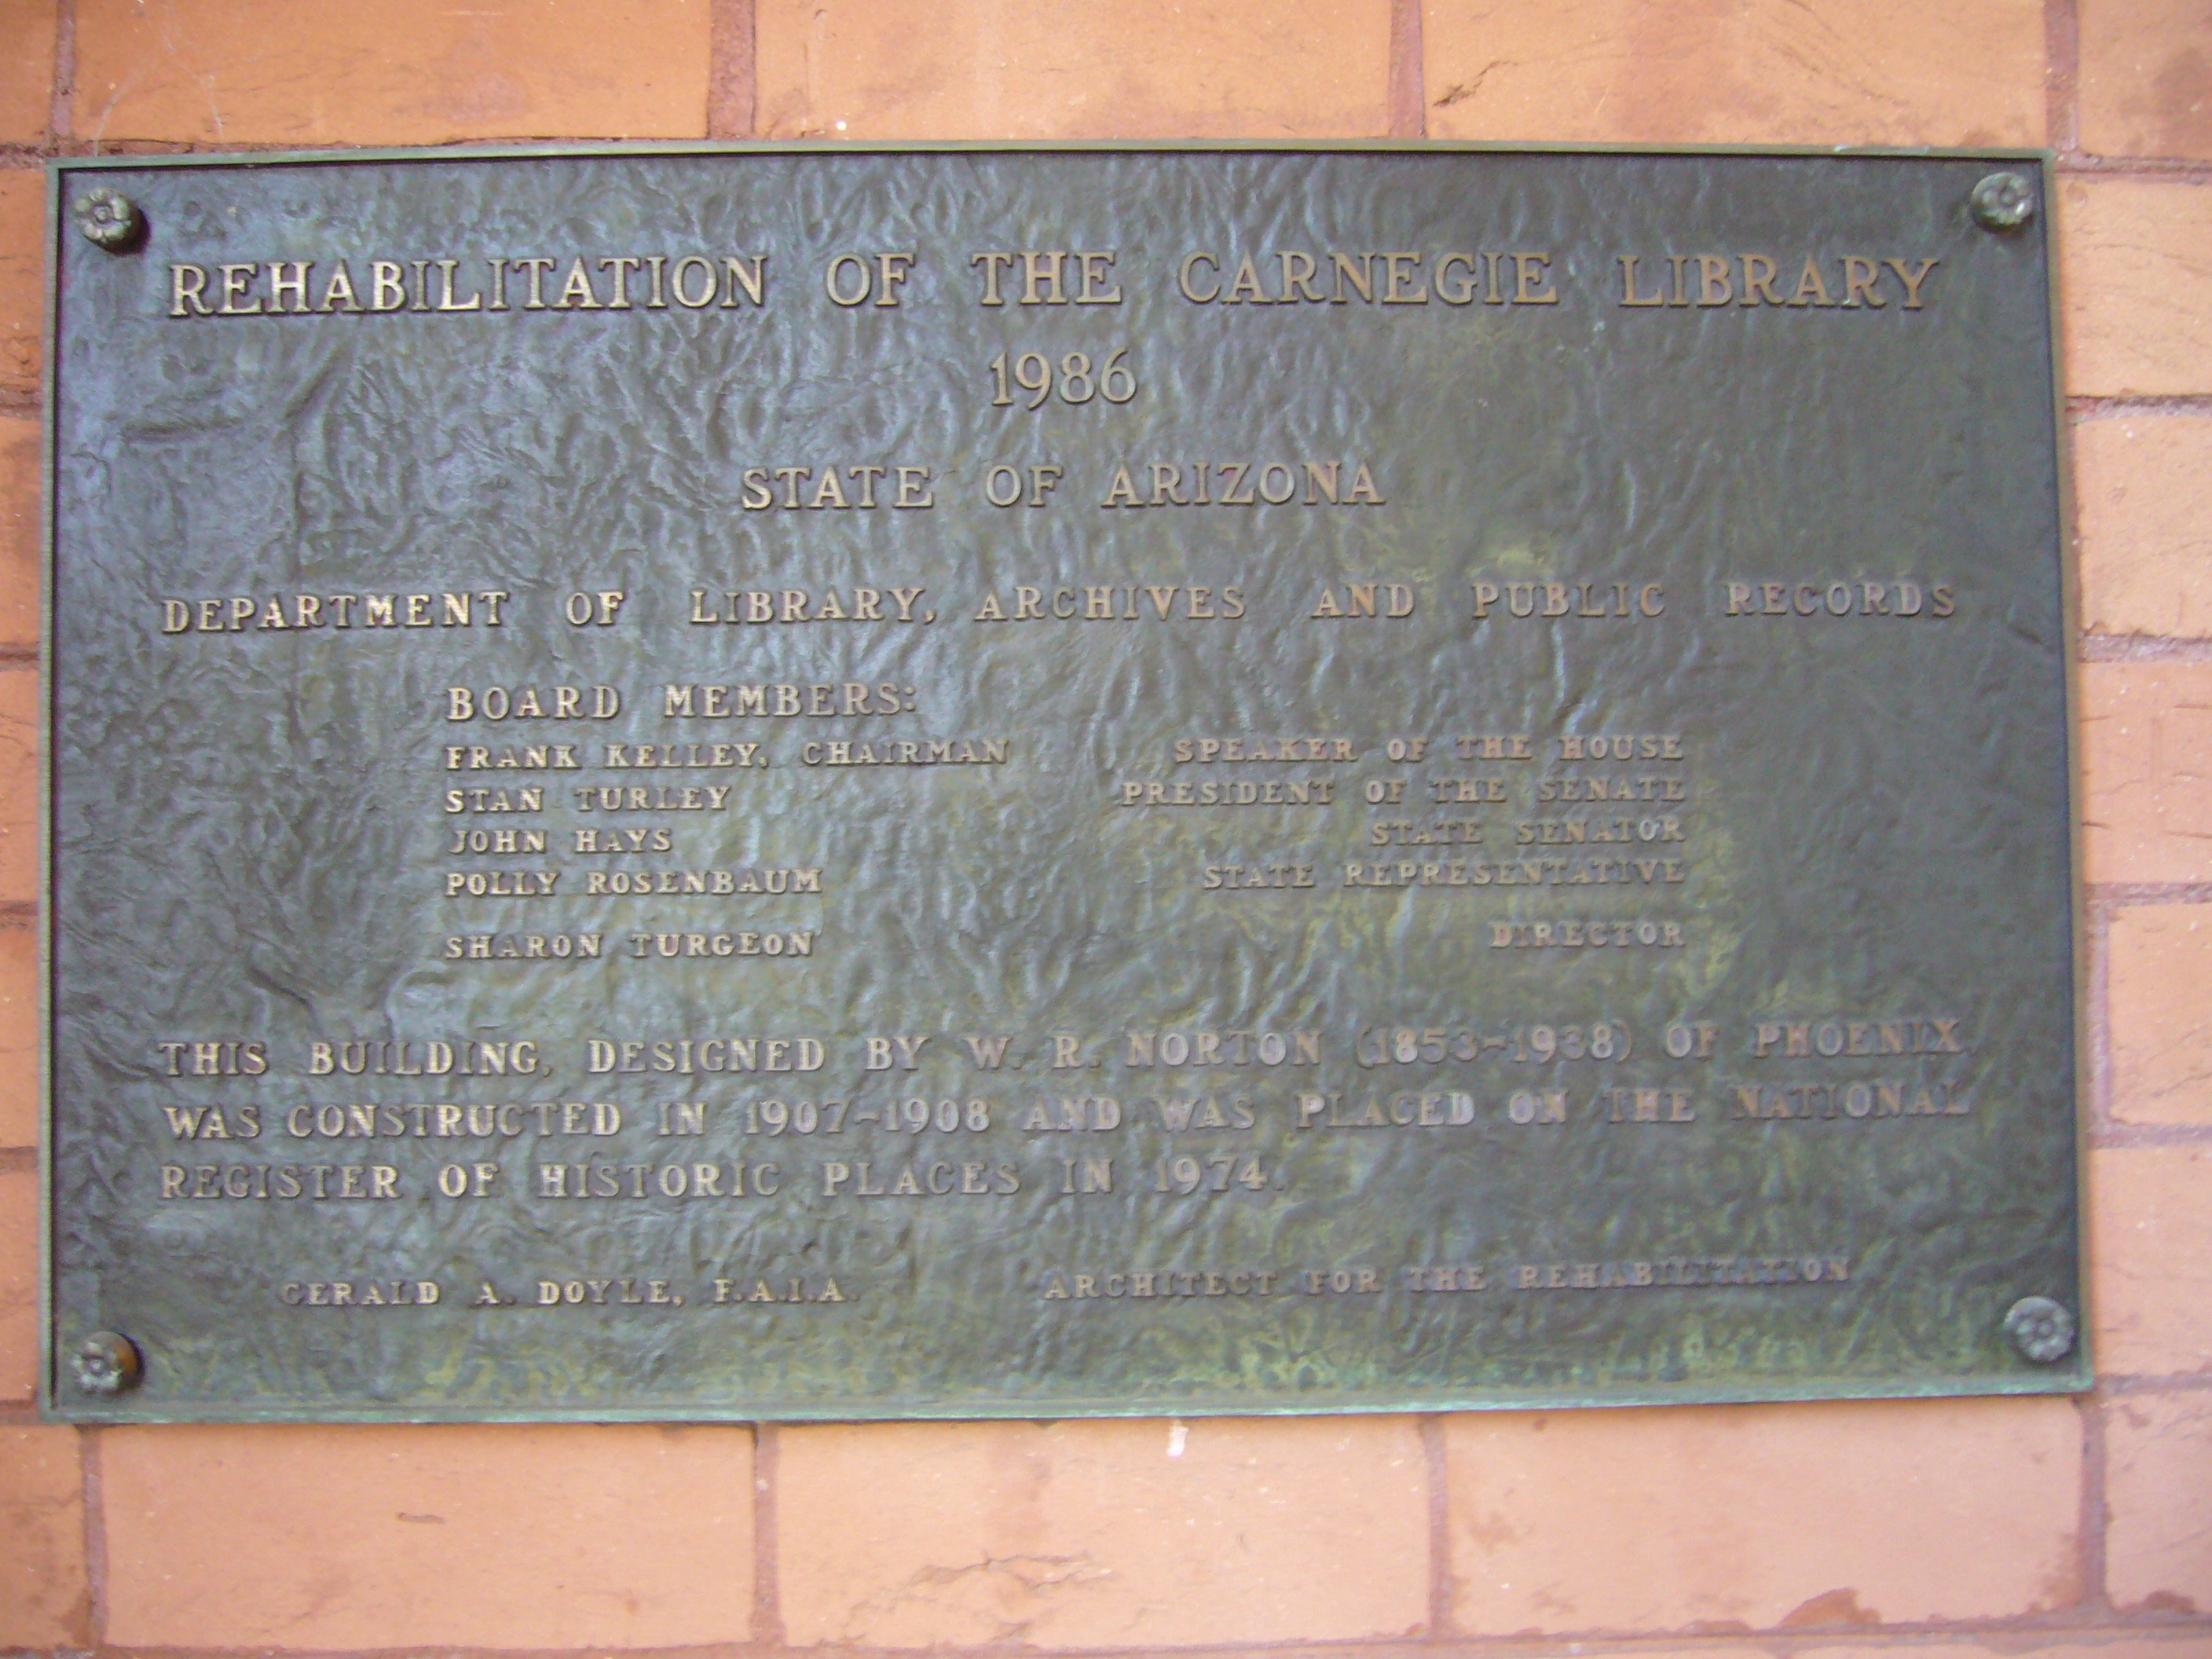 Rehabilitation of the Carnegie Library Marker